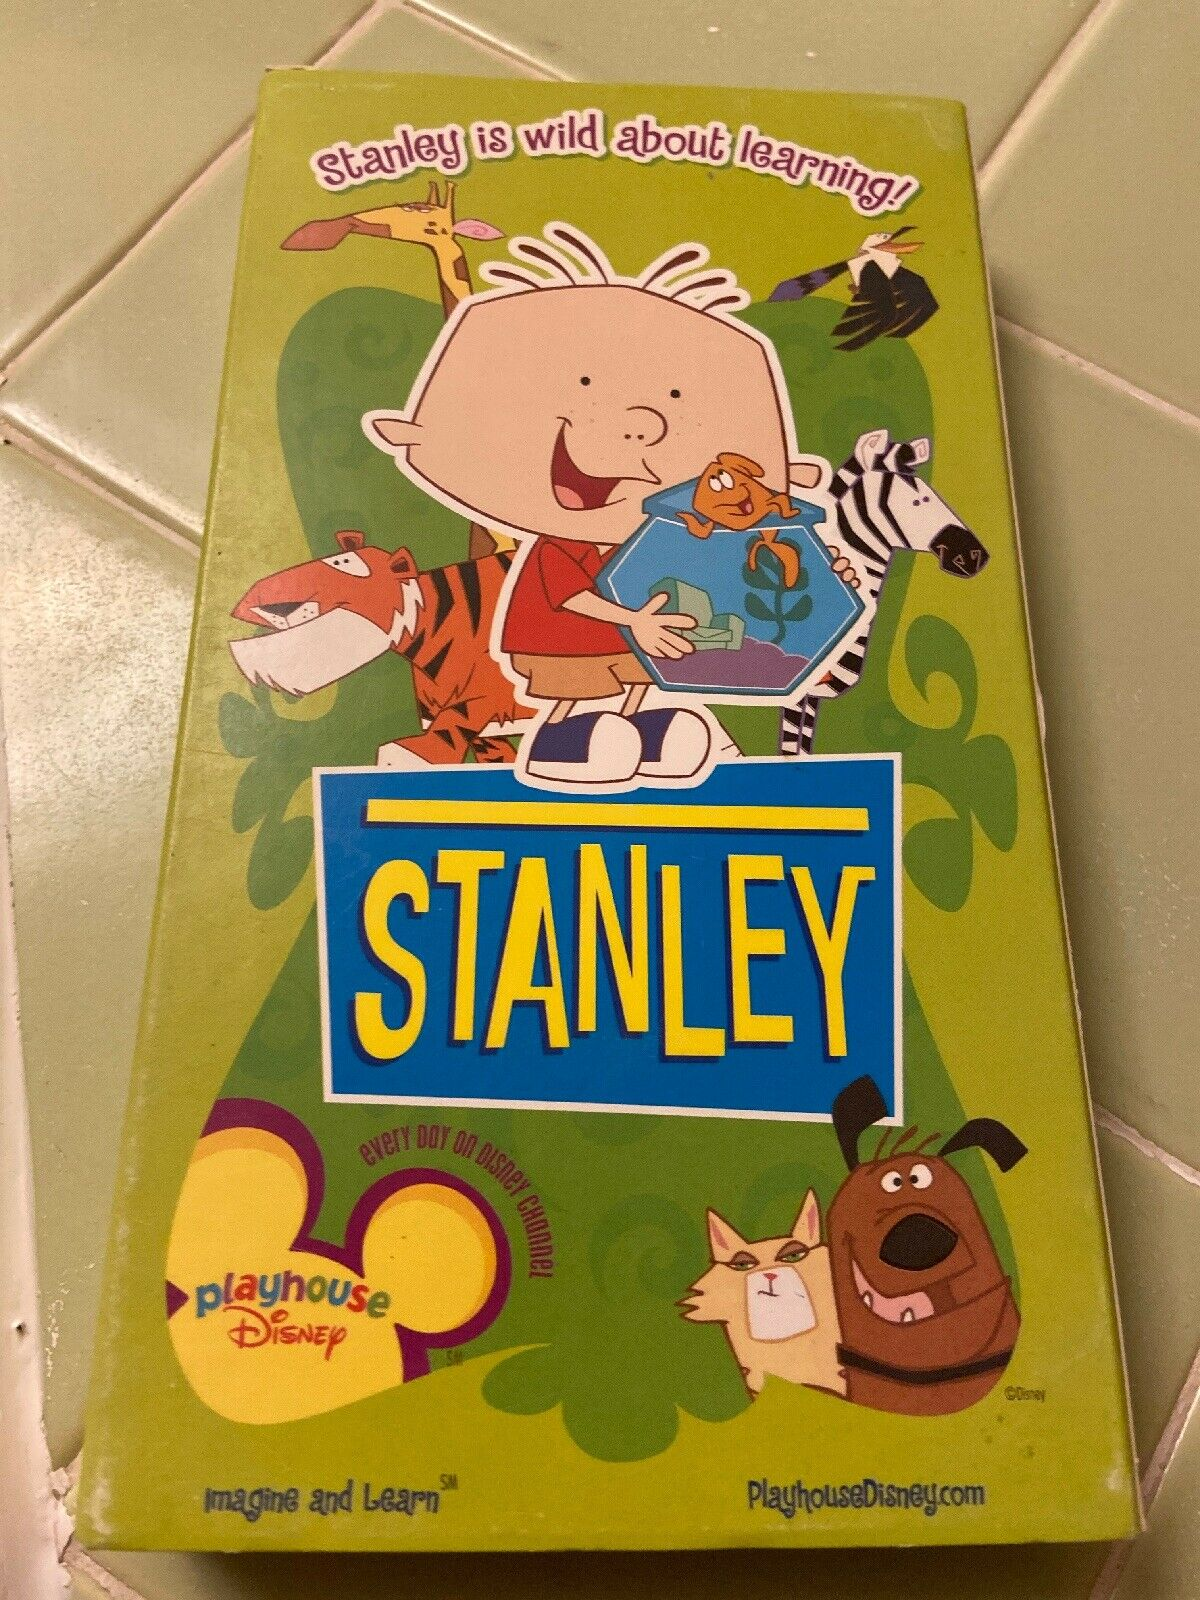 Stanley: Baby Pictures and Up The Apple Tree (2002 VHS)